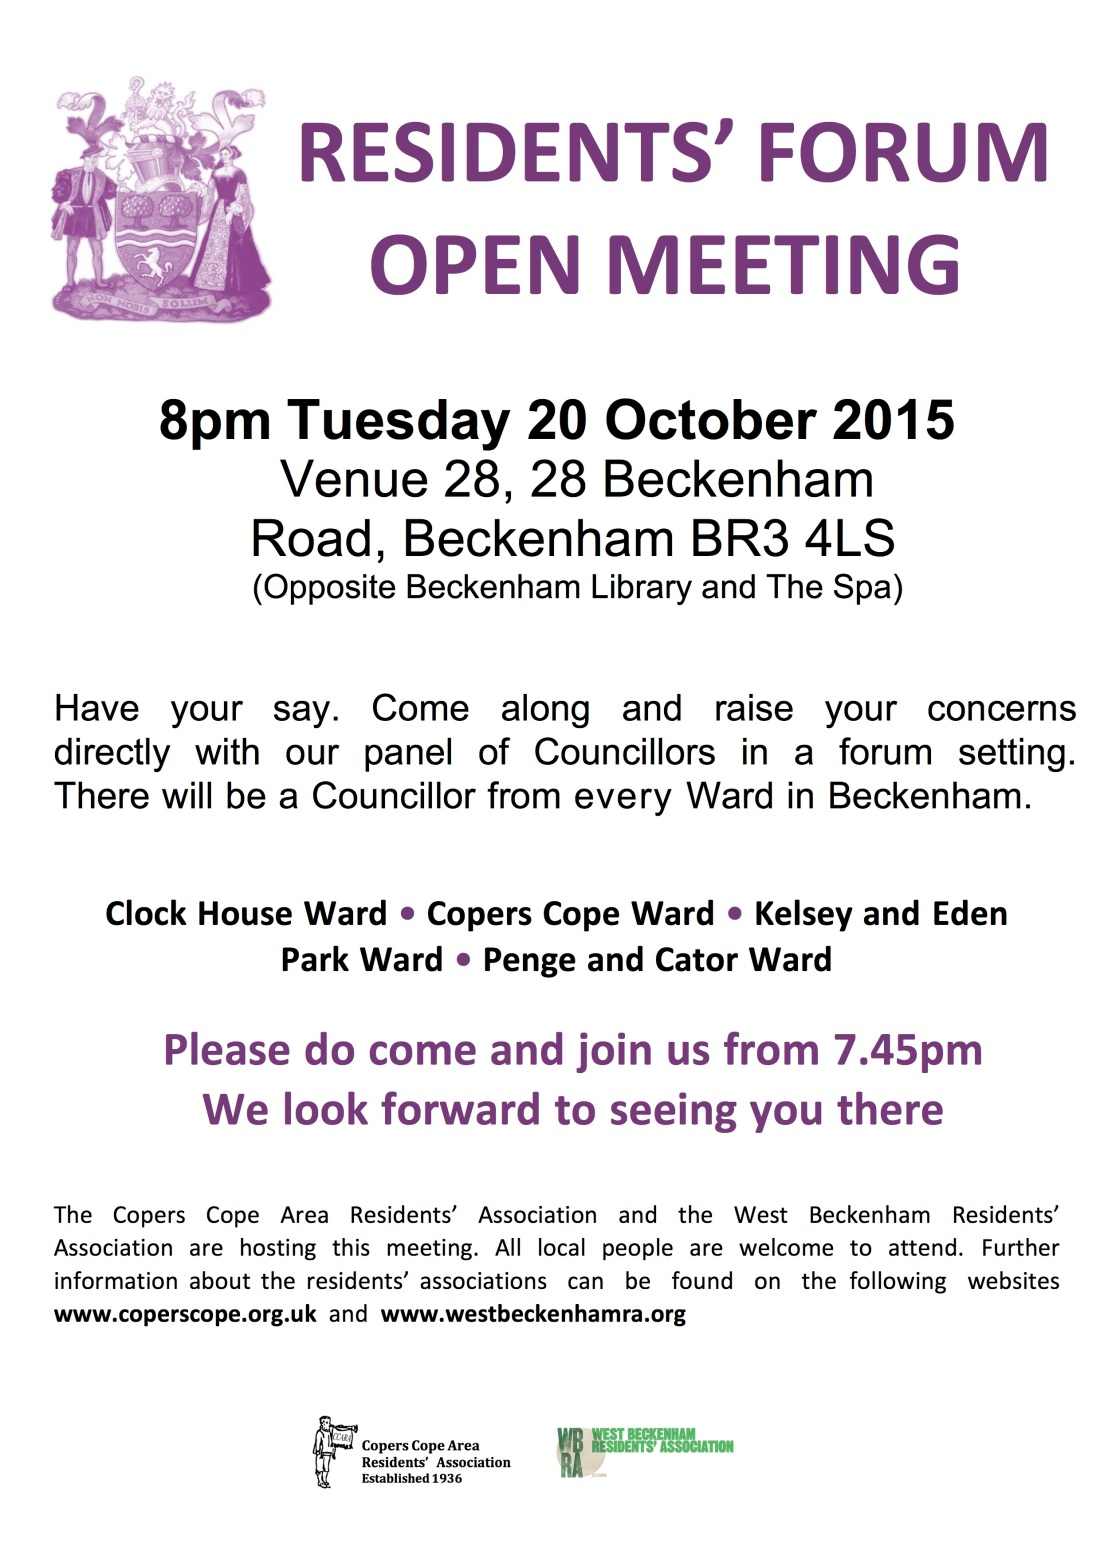 Microsoft Word - Joint west beck Residents Meeting word version